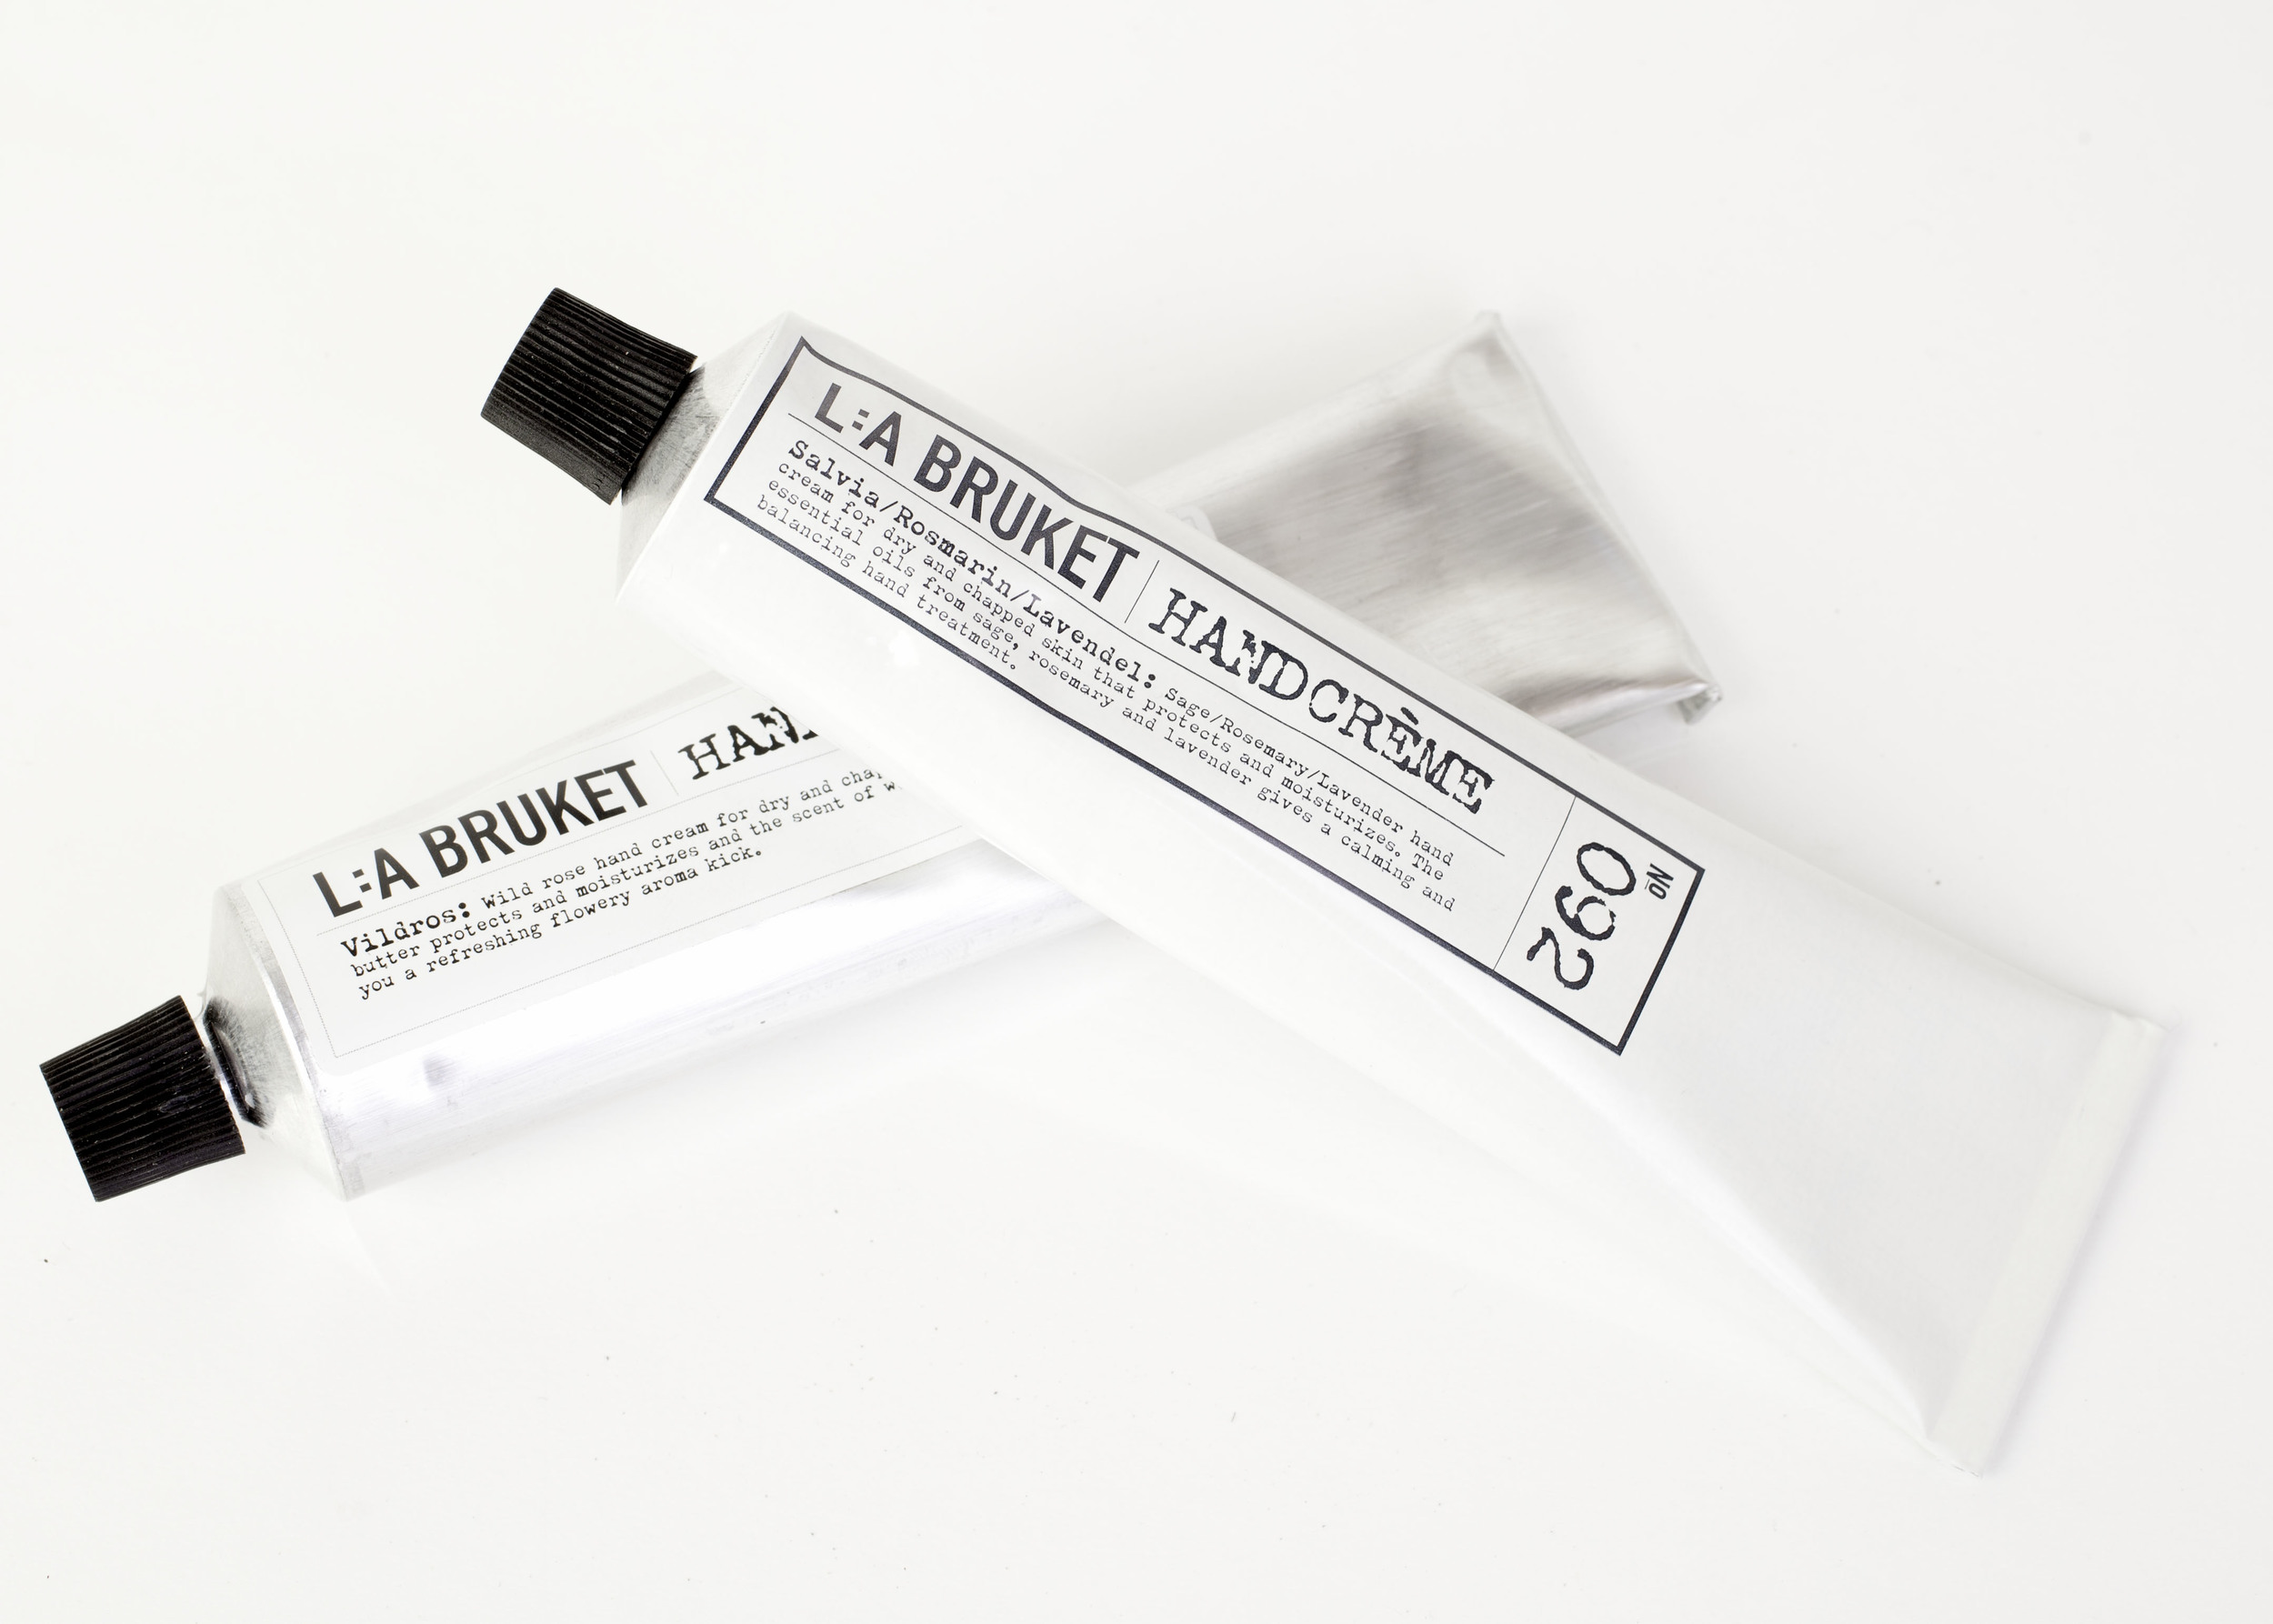 L:A Bruket's handcreme in Wildrose and Sage/Rosemary/Lavender. Perfect for dry and chapped hands as it protects and moisturizes.